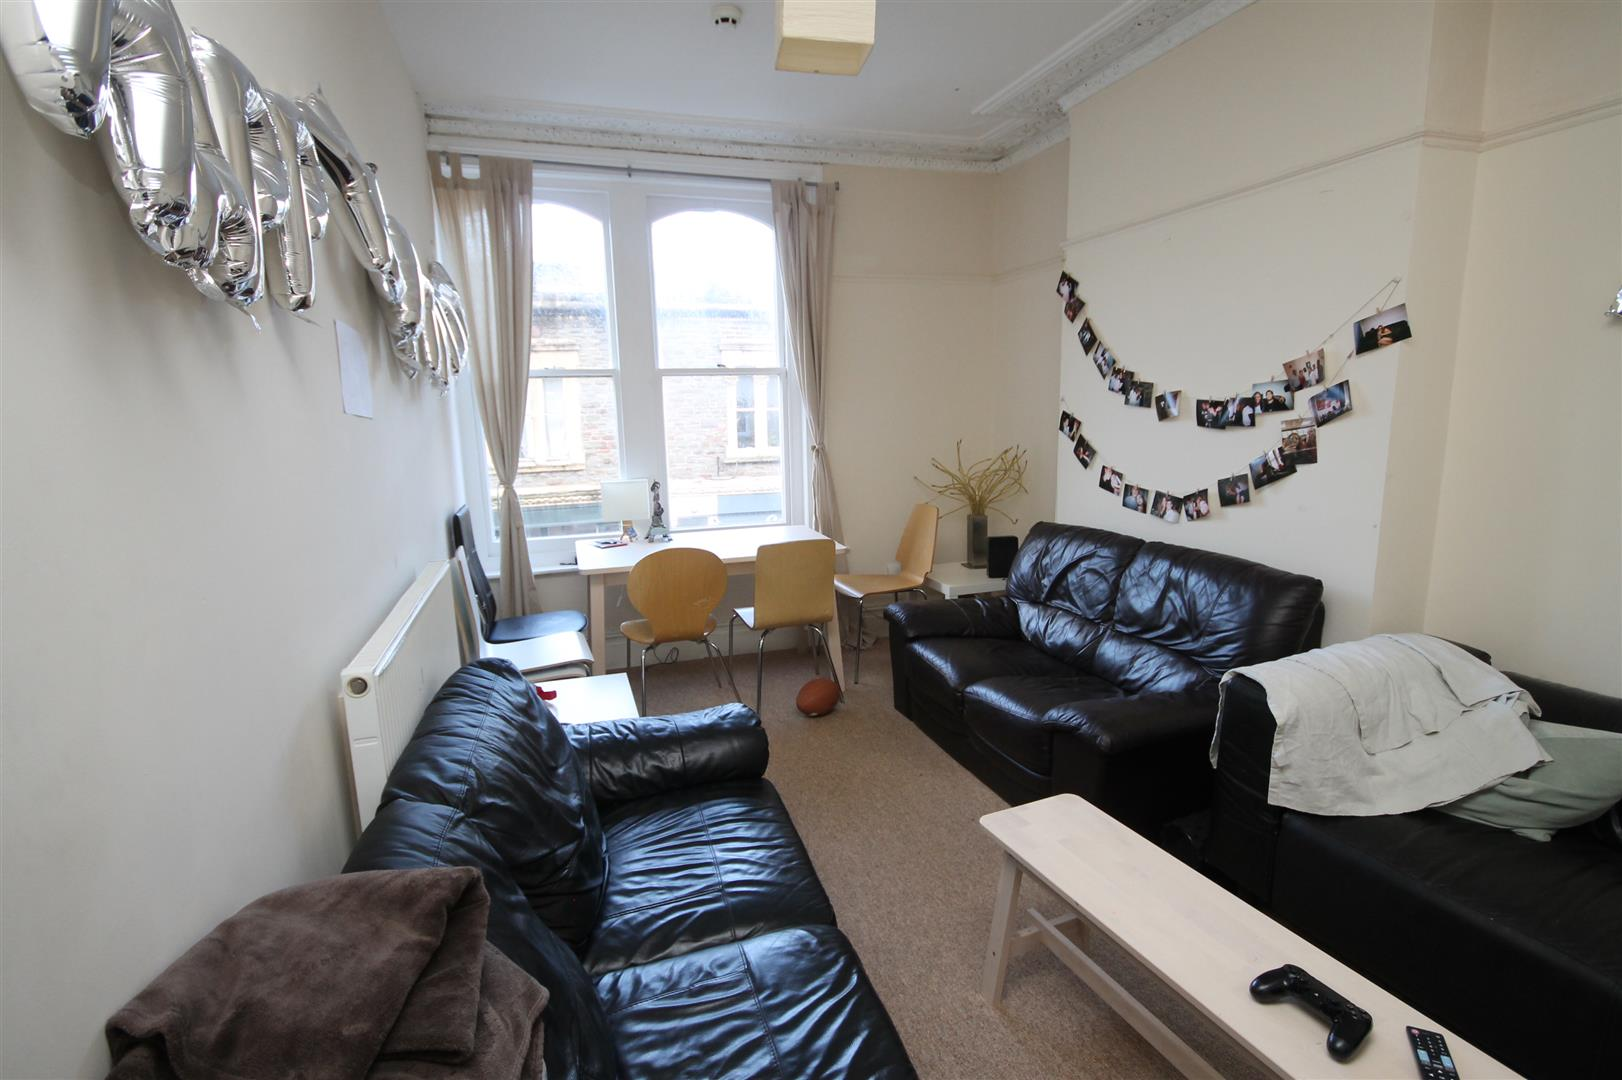 6 bed flat to rent in Chandos Road, Bristol, BS6